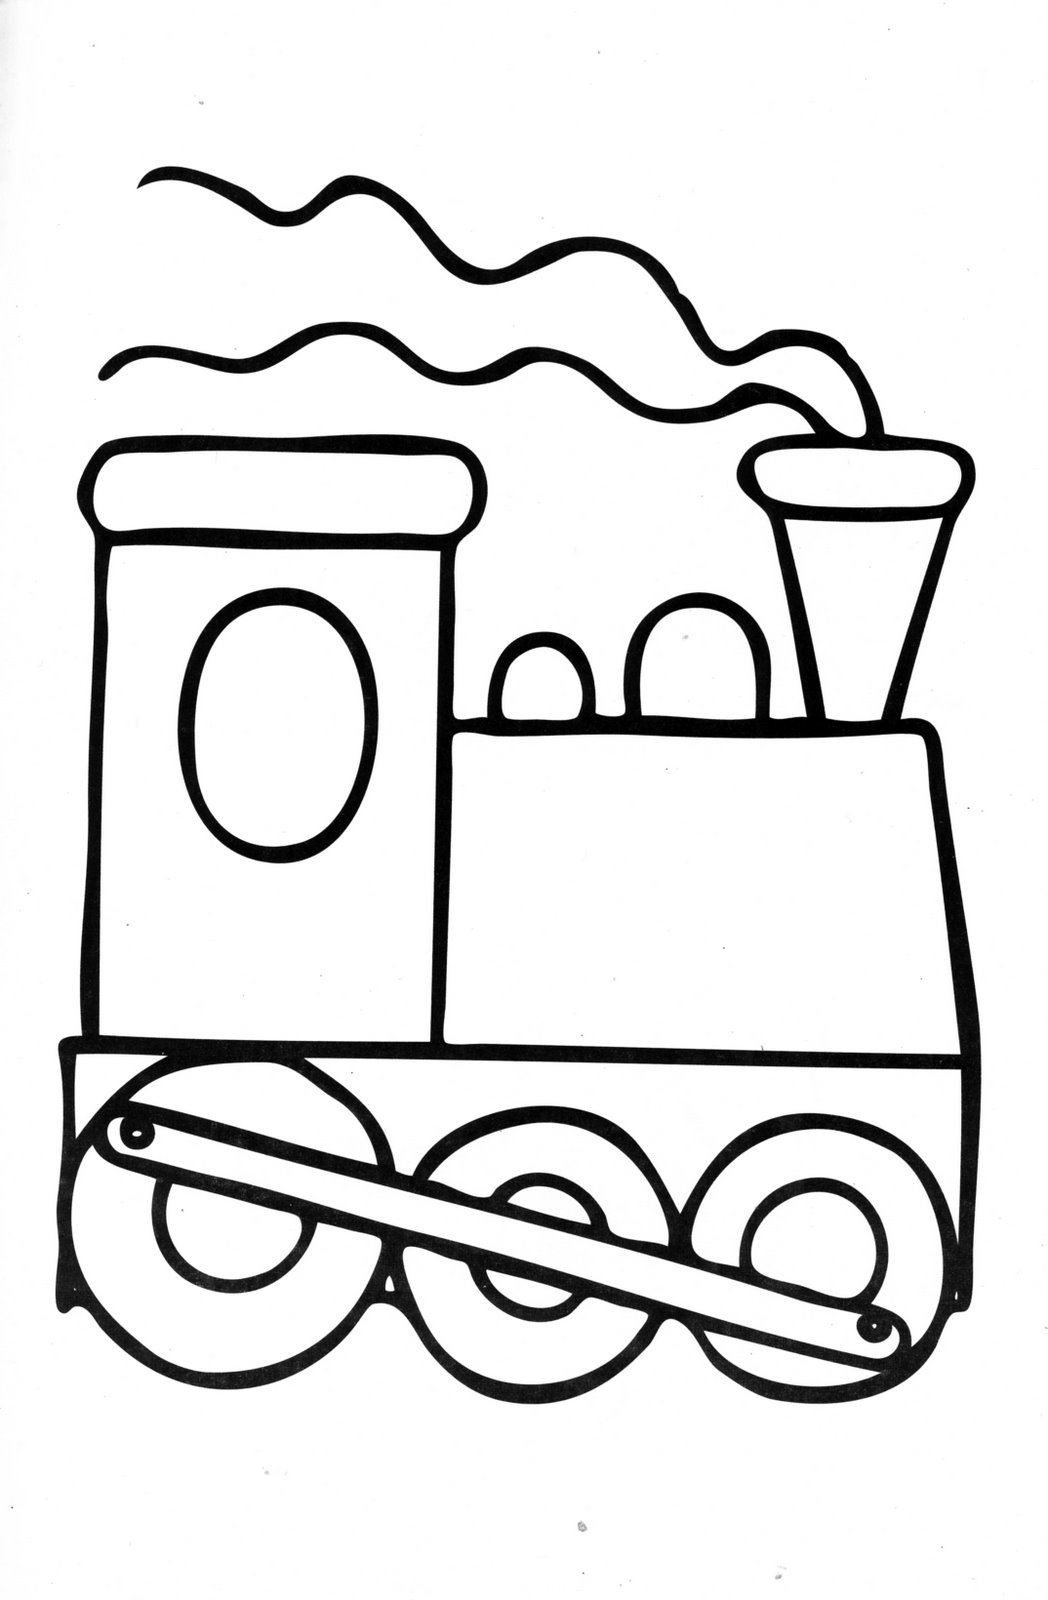 coloring pages trains train coloring sheets on pinterest coloring sheets pages trains coloring